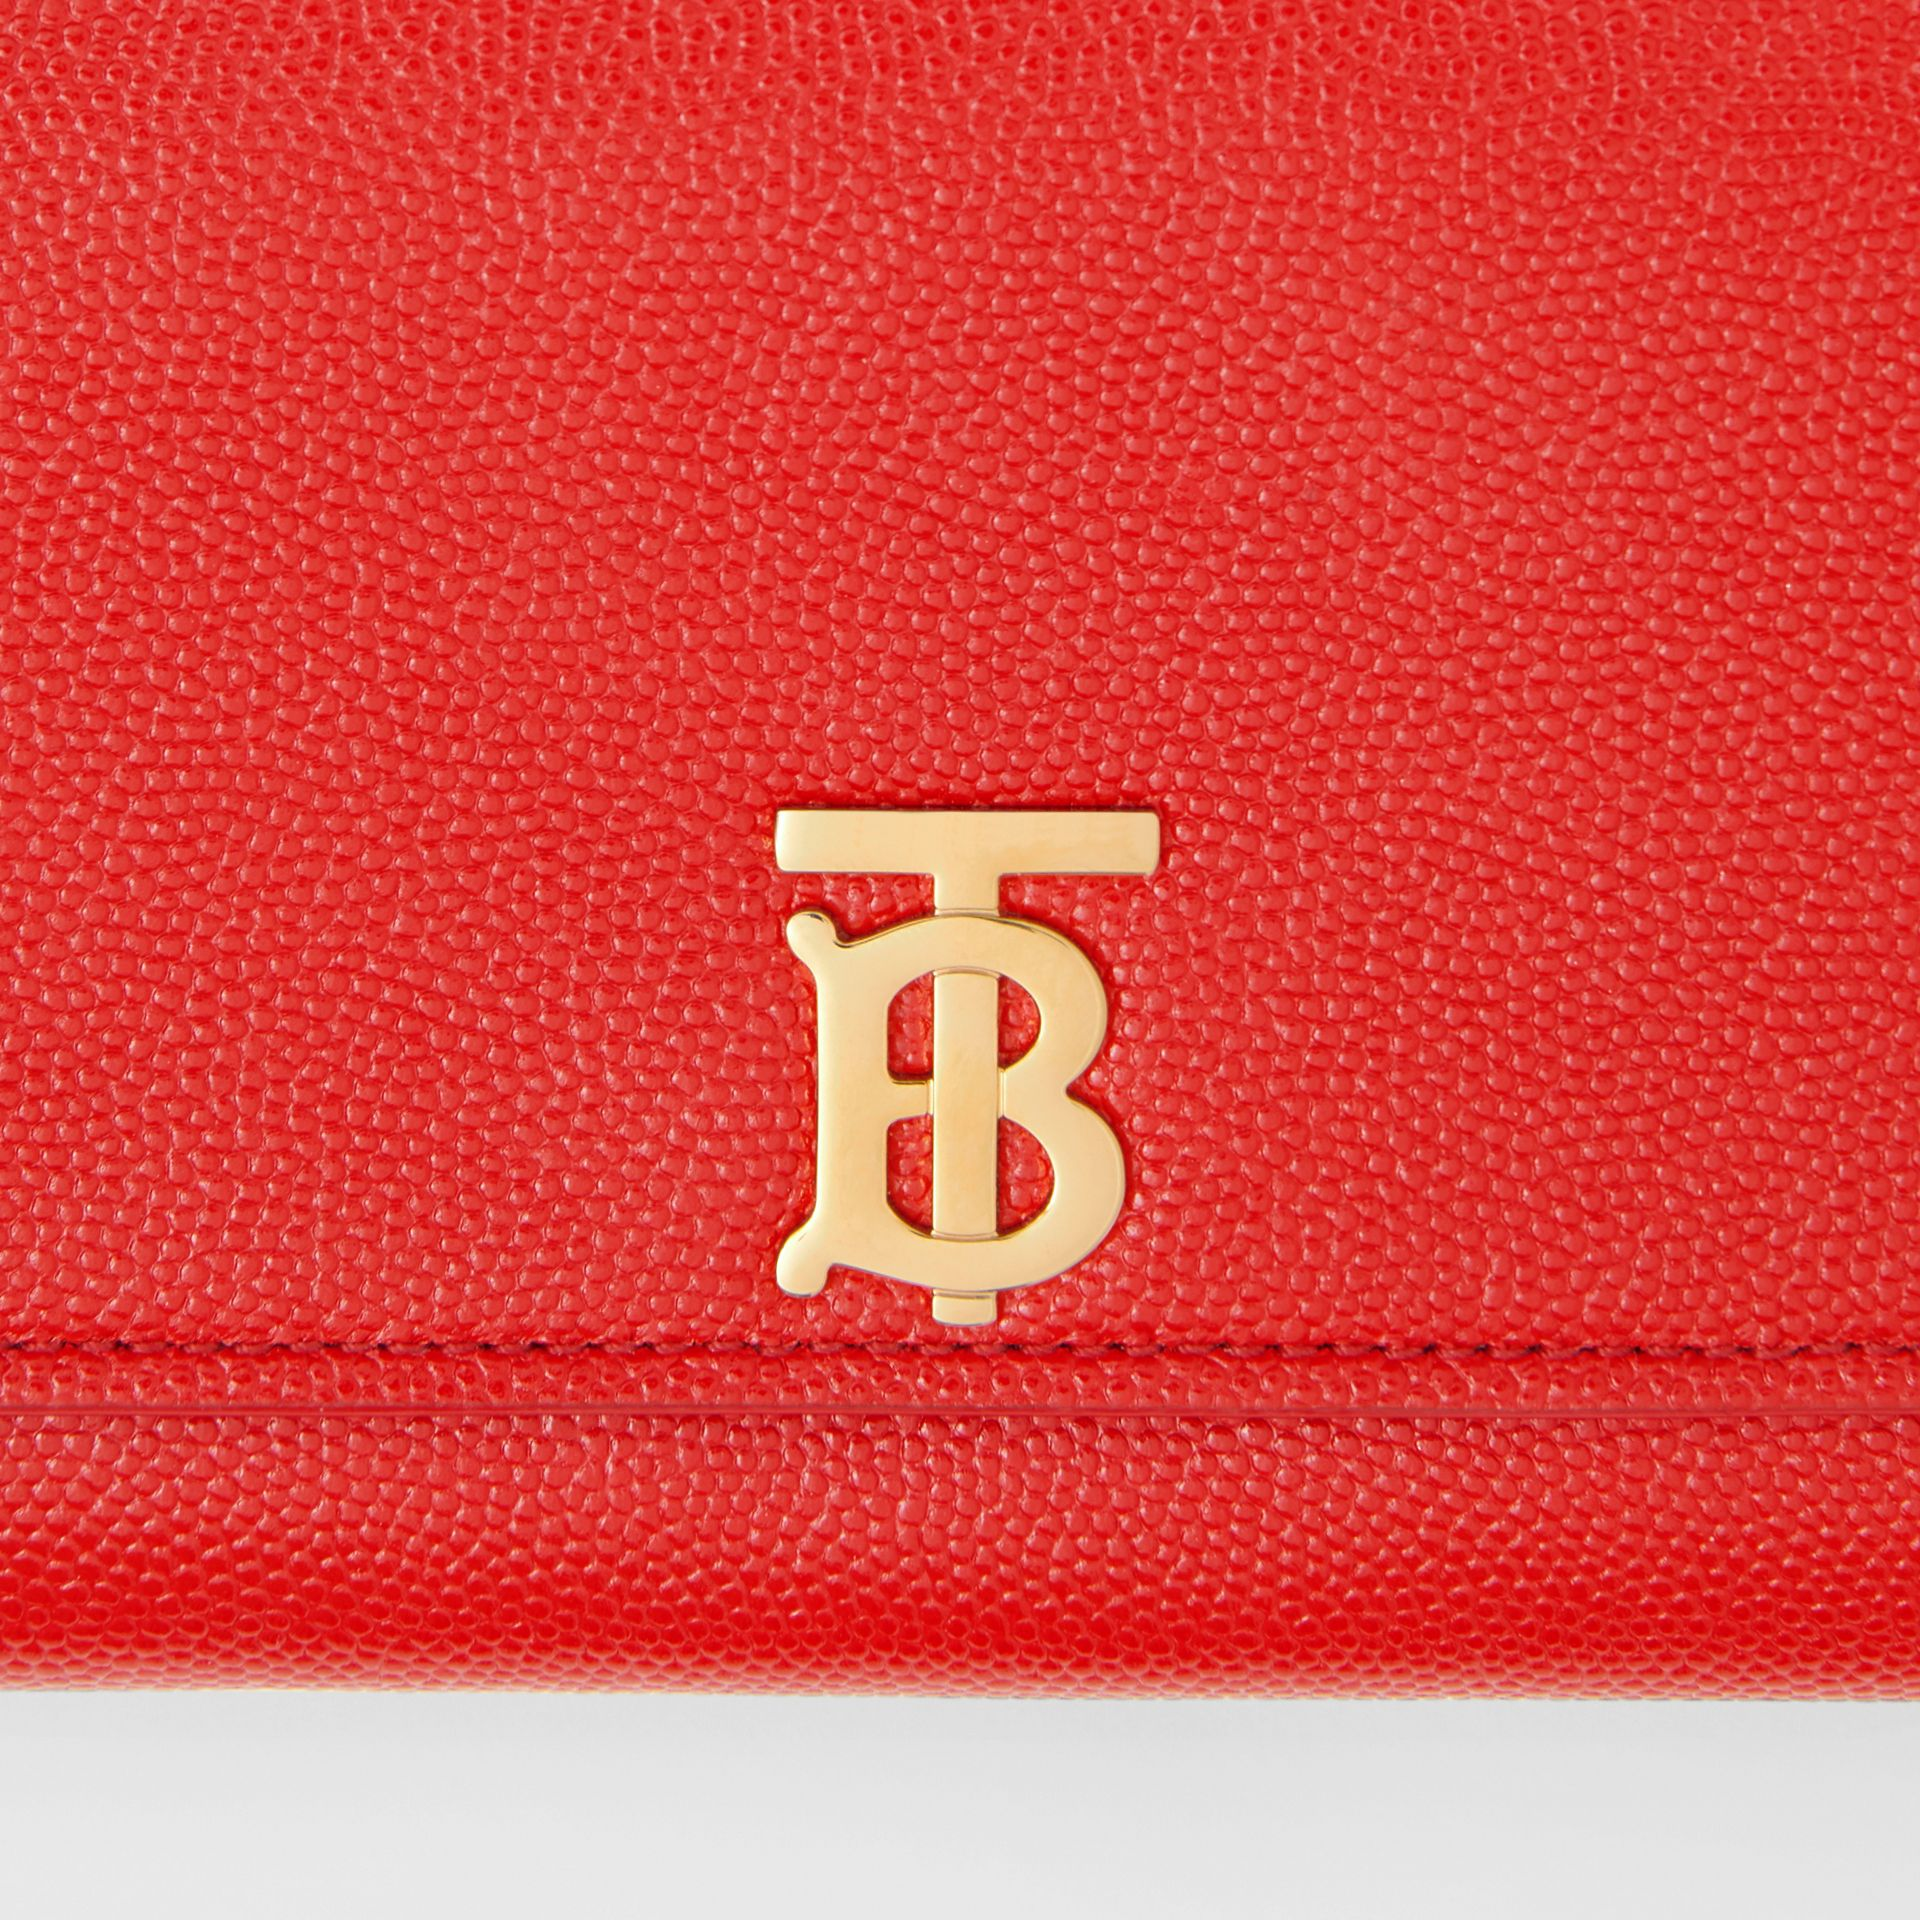 Monogram Motif Grainy Leather Continental Wallet in Bright Red - Women | Burberry - gallery image 1